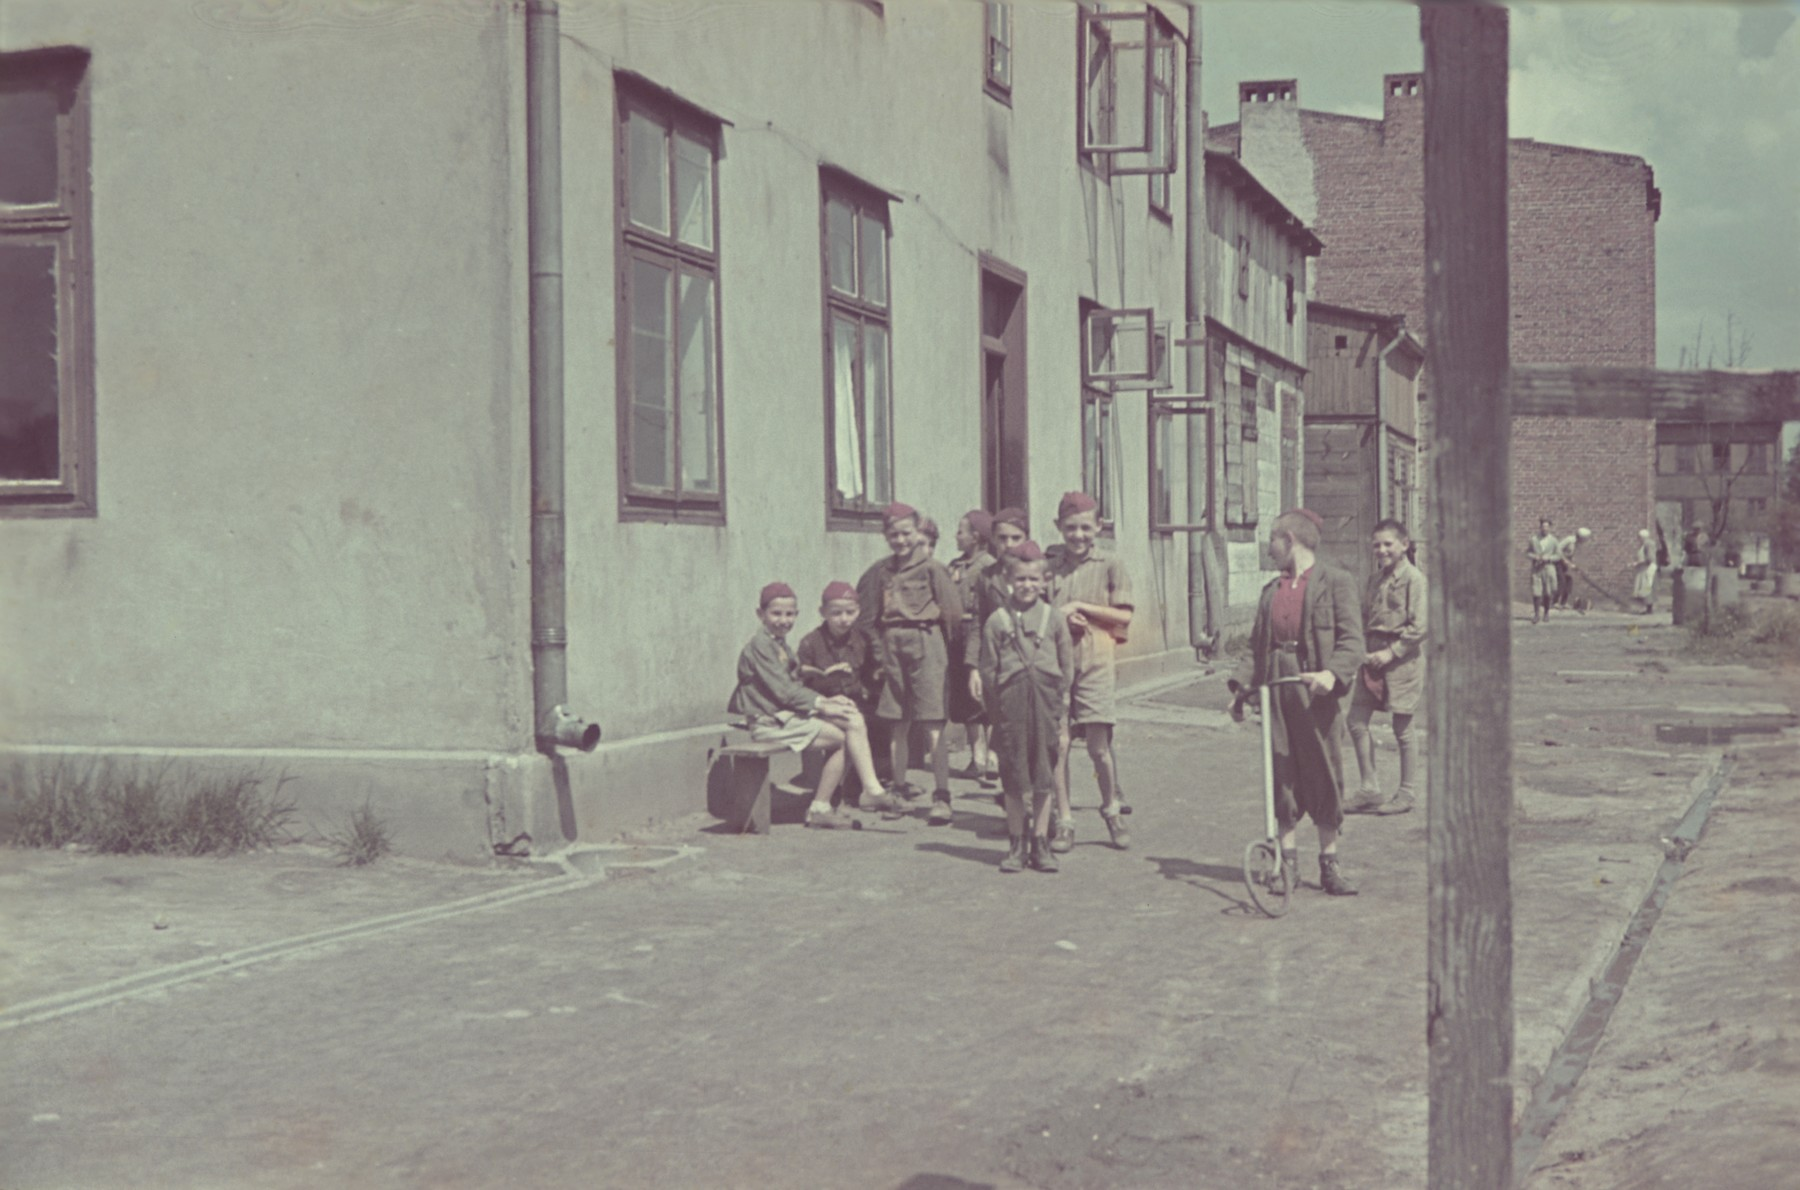 A group of boys, one with a scooter, stand on a street corner in the Lodz ghetto.